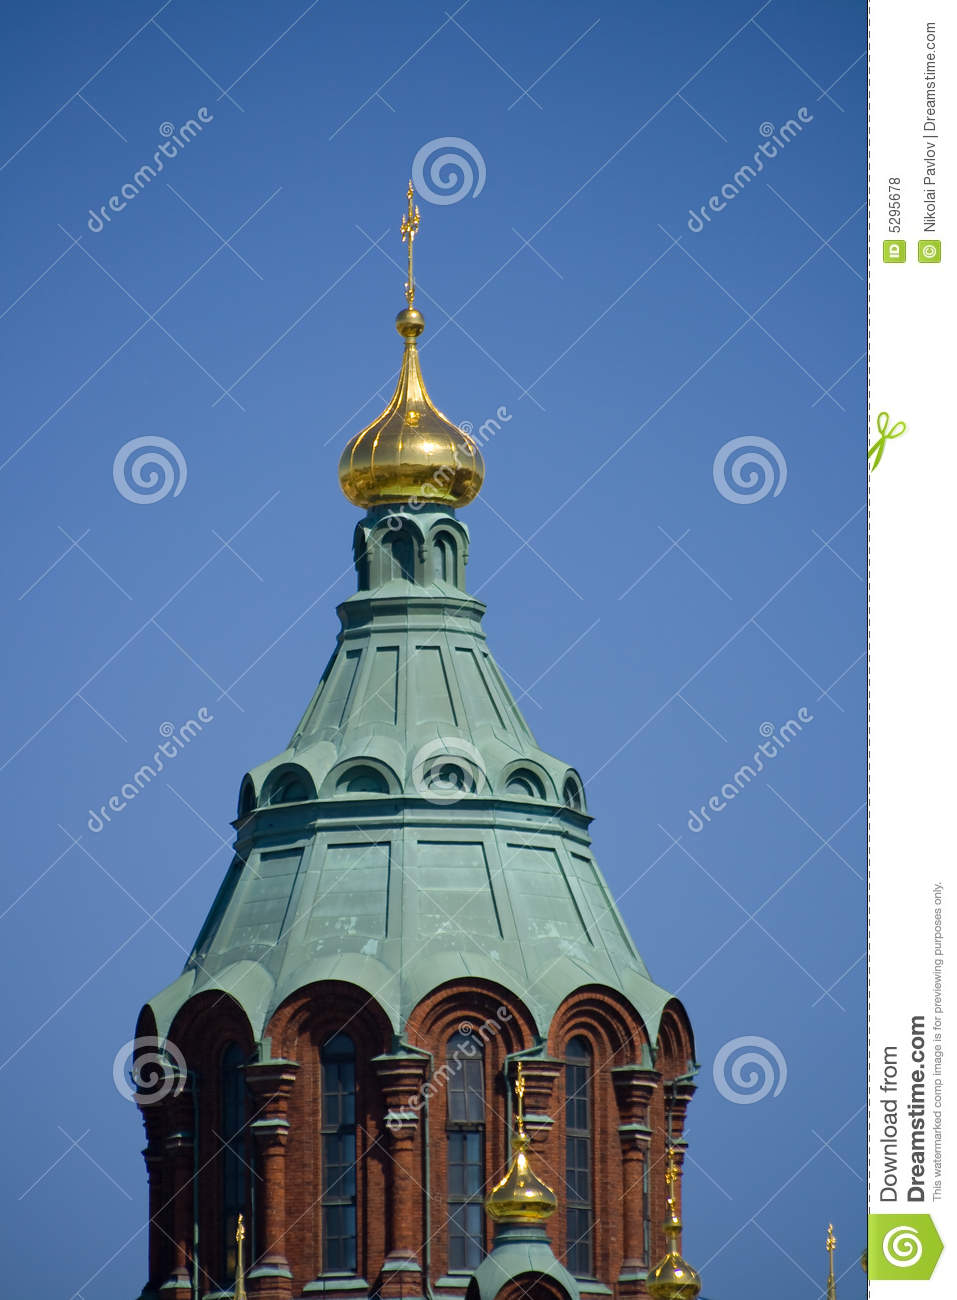 Pick of the evangelical church in Finland